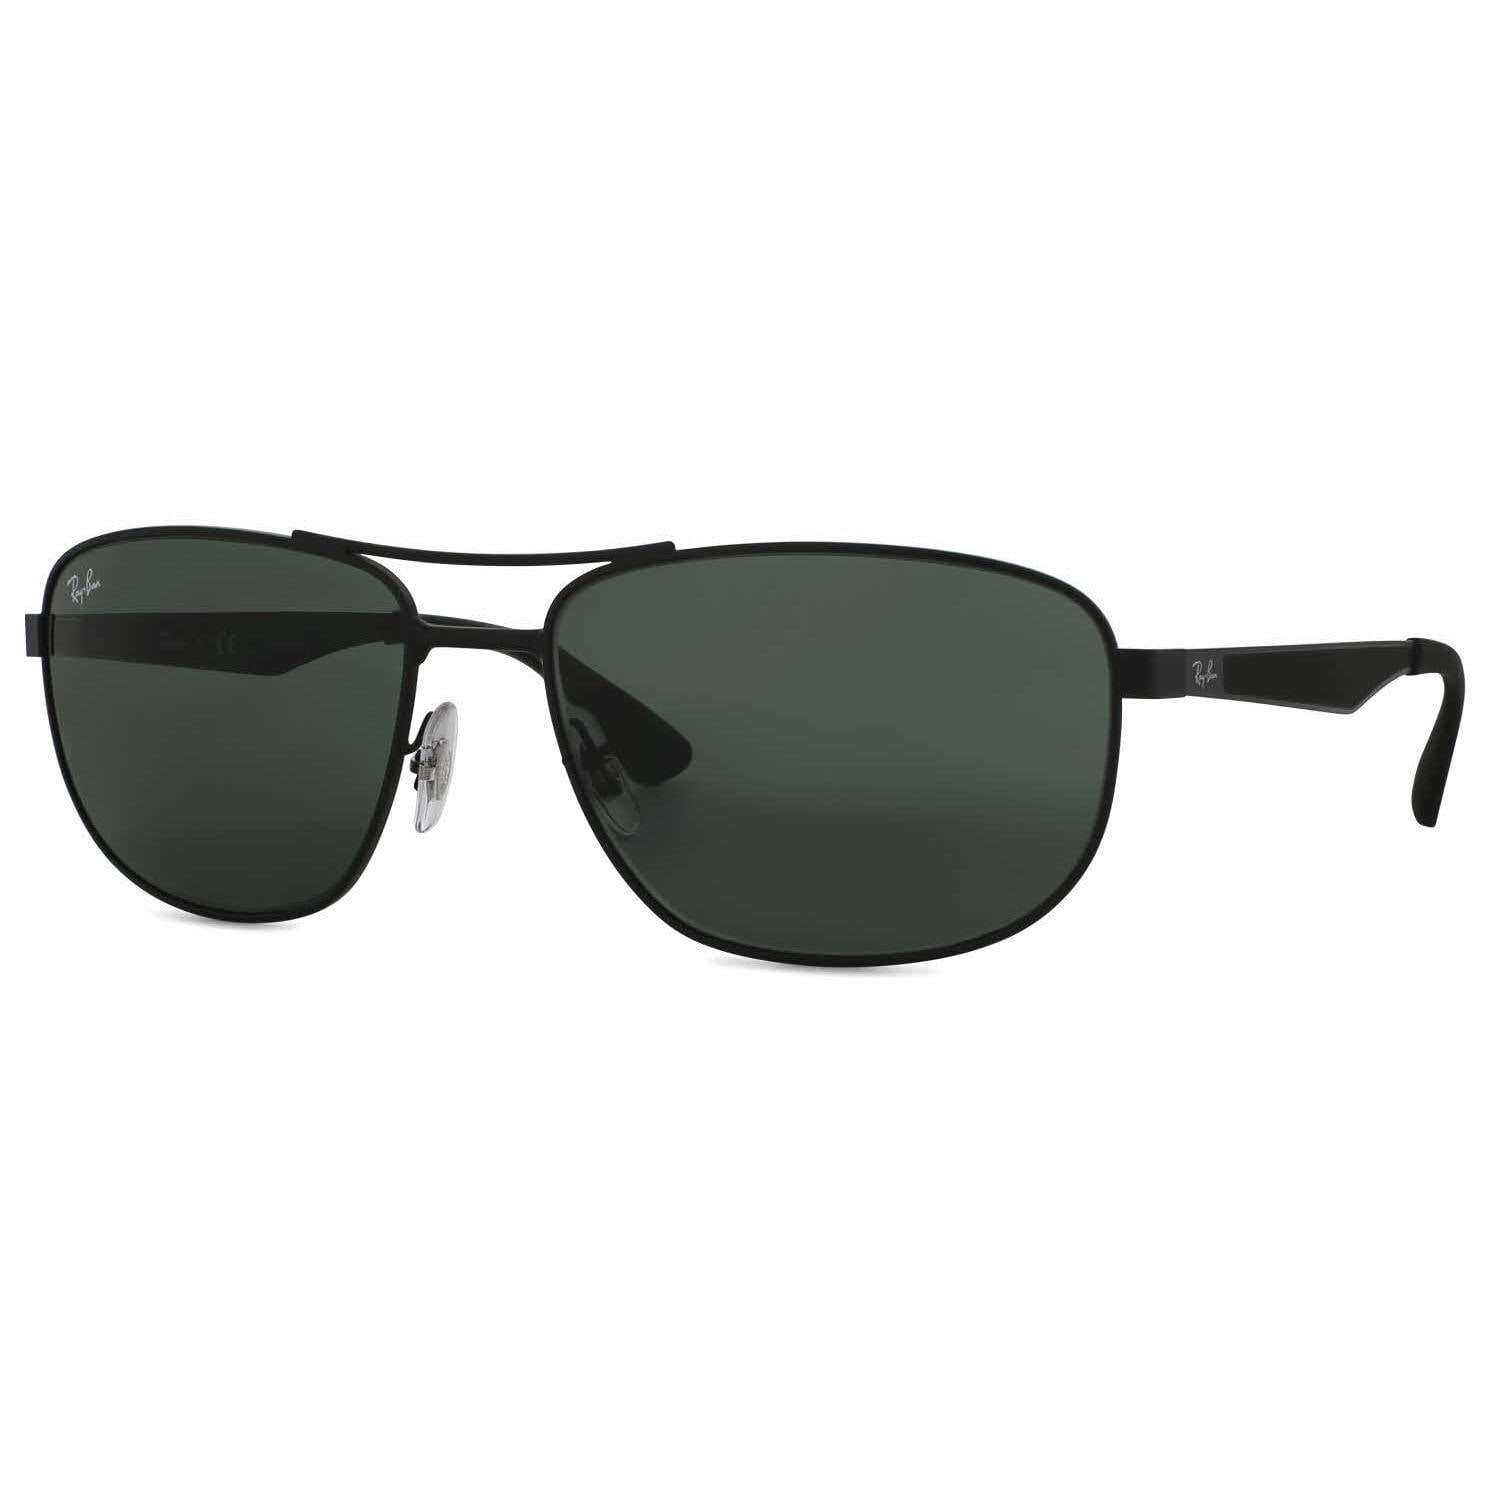 af743eb328e Shop Ray-Ban RB3528 006 71 Black Frame Green Classic 61mm Lens Sunglasses -  Free Shipping Today - Overstock - 14431344